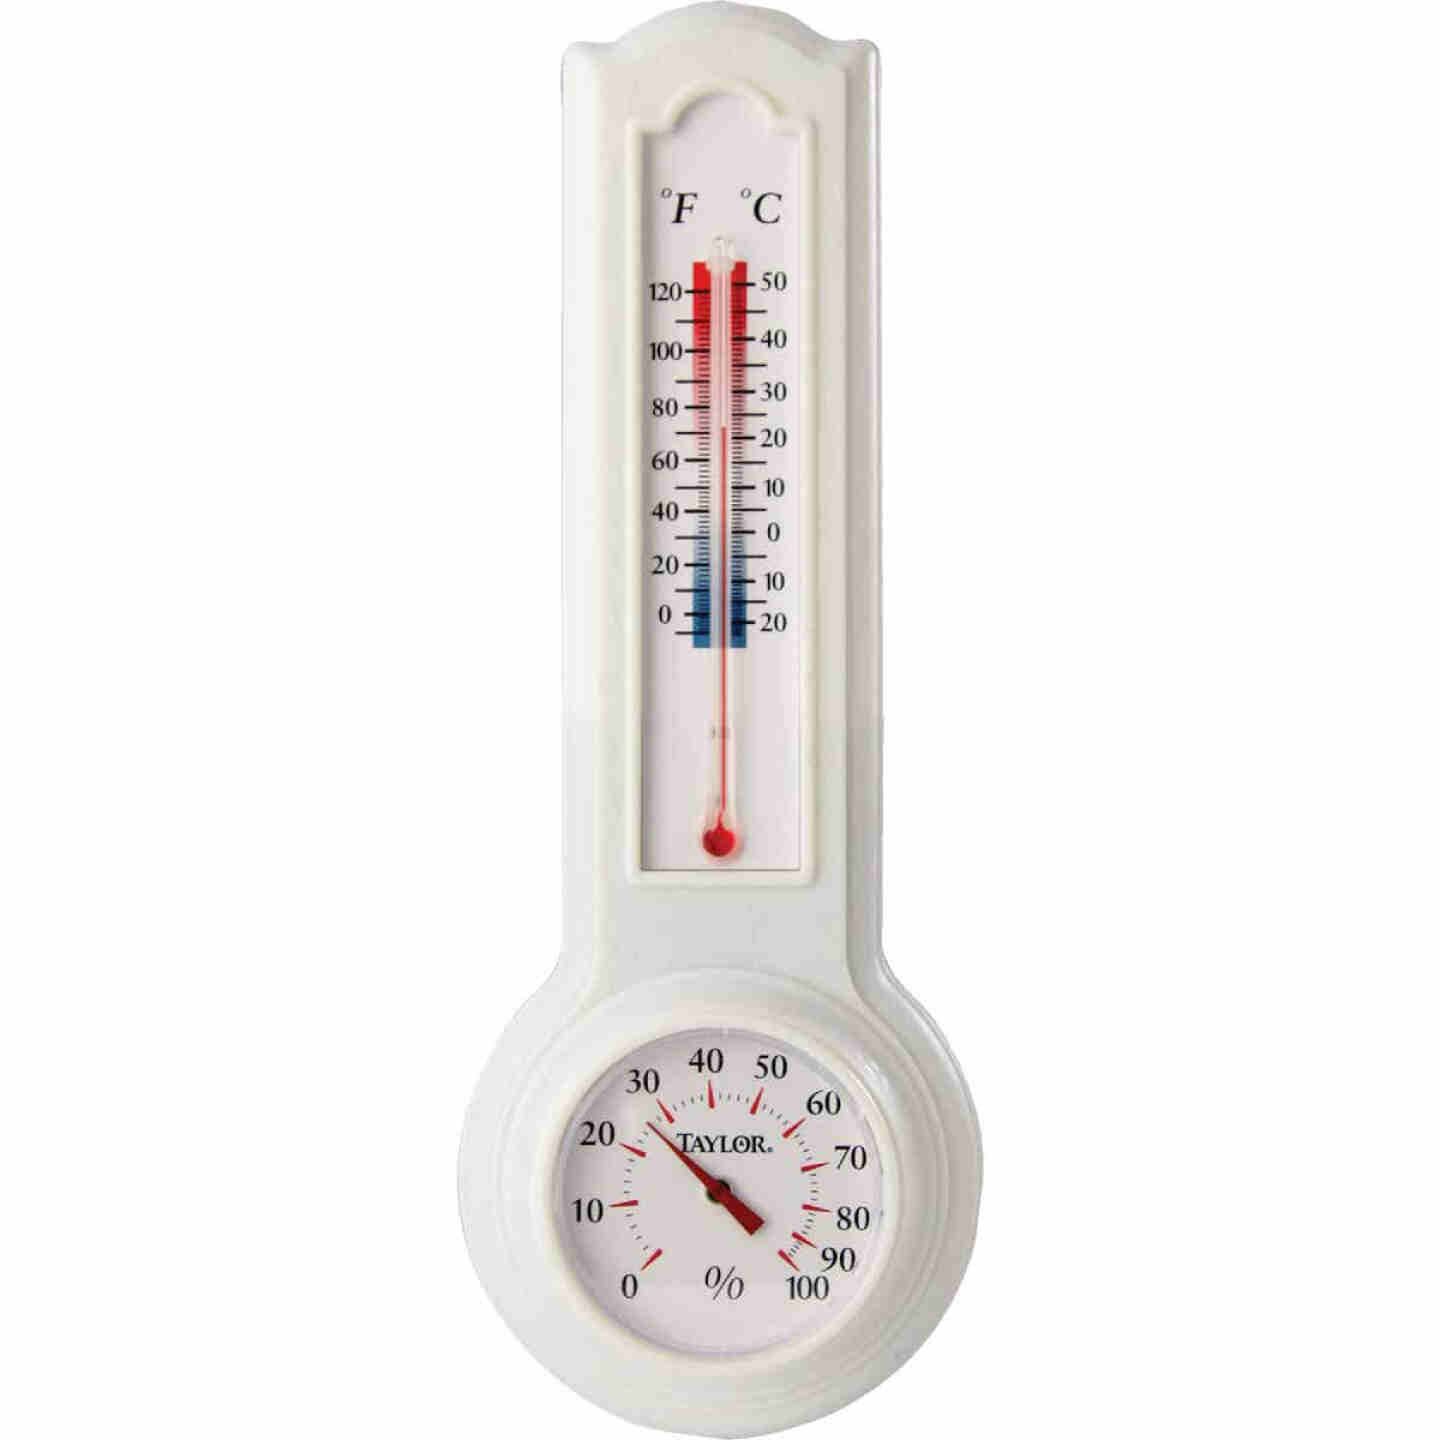 Taylor Fahrenheit & Celsius Analog 0 to 120 F, -20 to 50 C Hygrometer & Thermometer Image 1